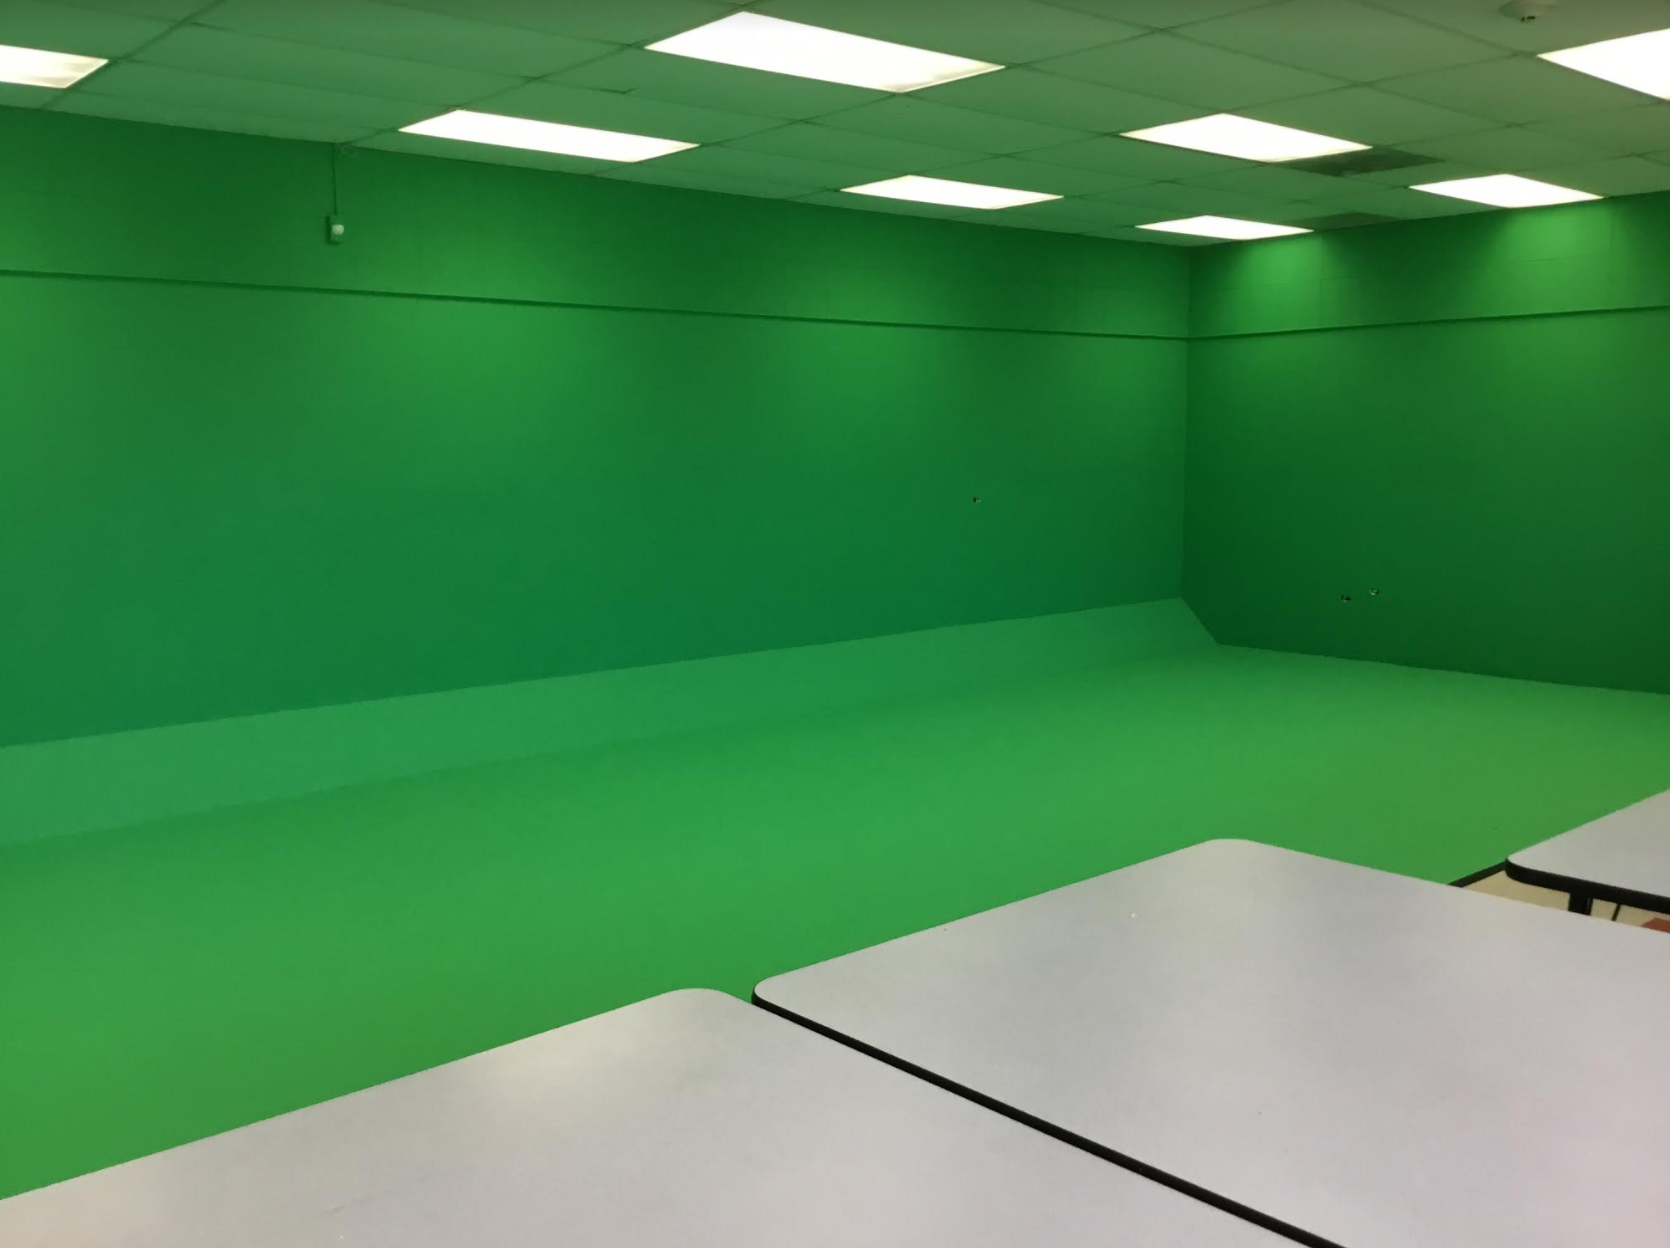 """Student Technology Leaders (STLs) at Ralph Bunche built a greenscreen """"Green Room"""" for teachers and students to take videos in. The """"Green Room"""" will allow students to do special effects and create high quality videos for their school."""